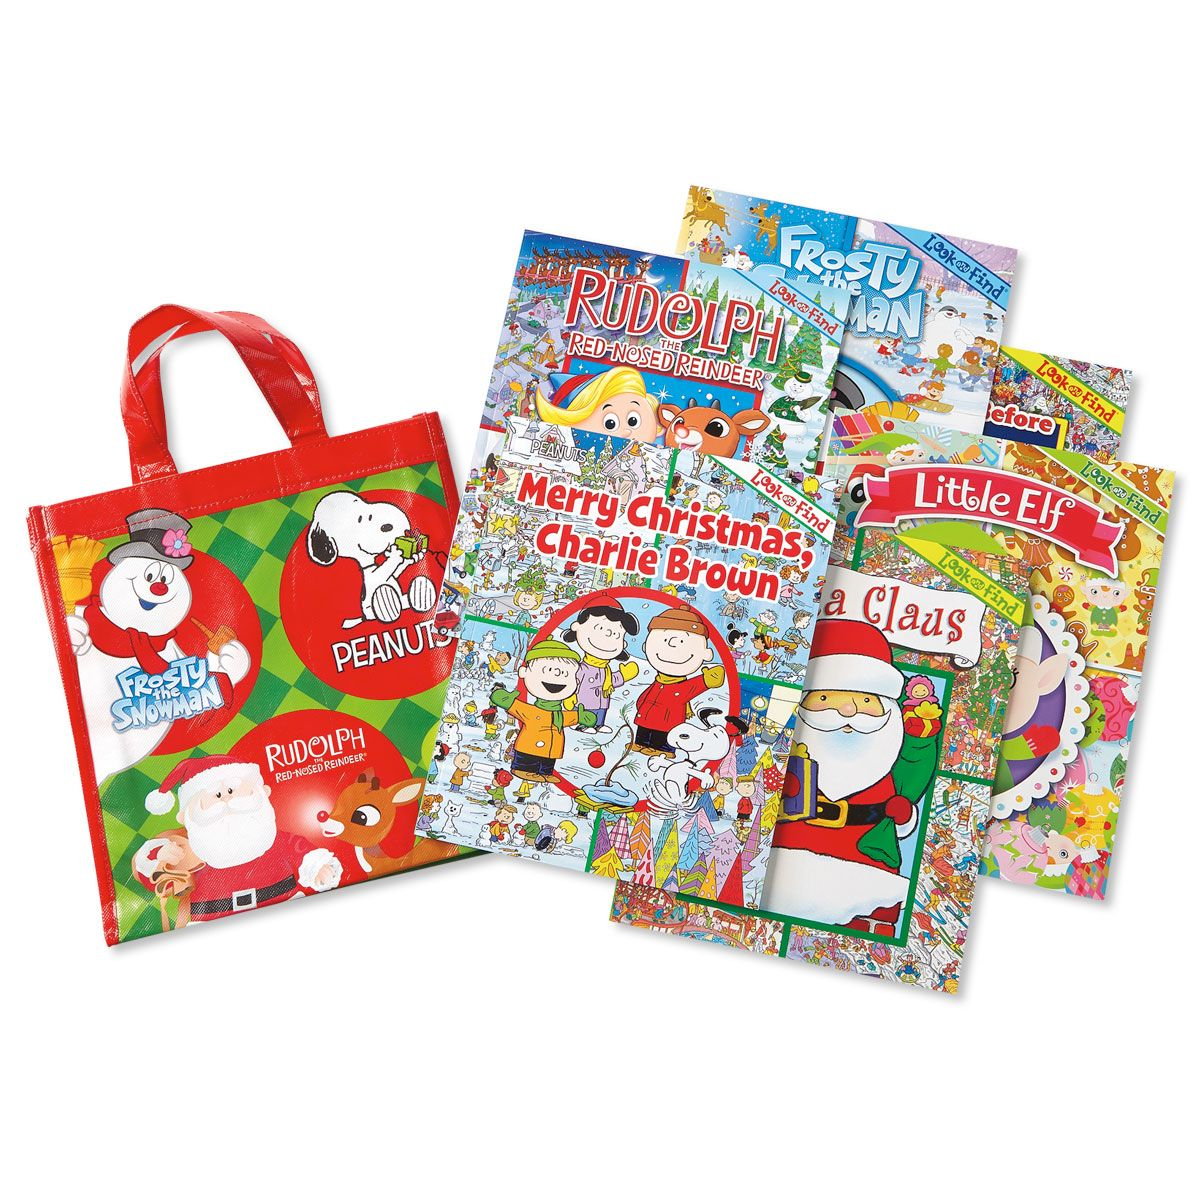 Christmas Look and Find® Books in a Tote Bag